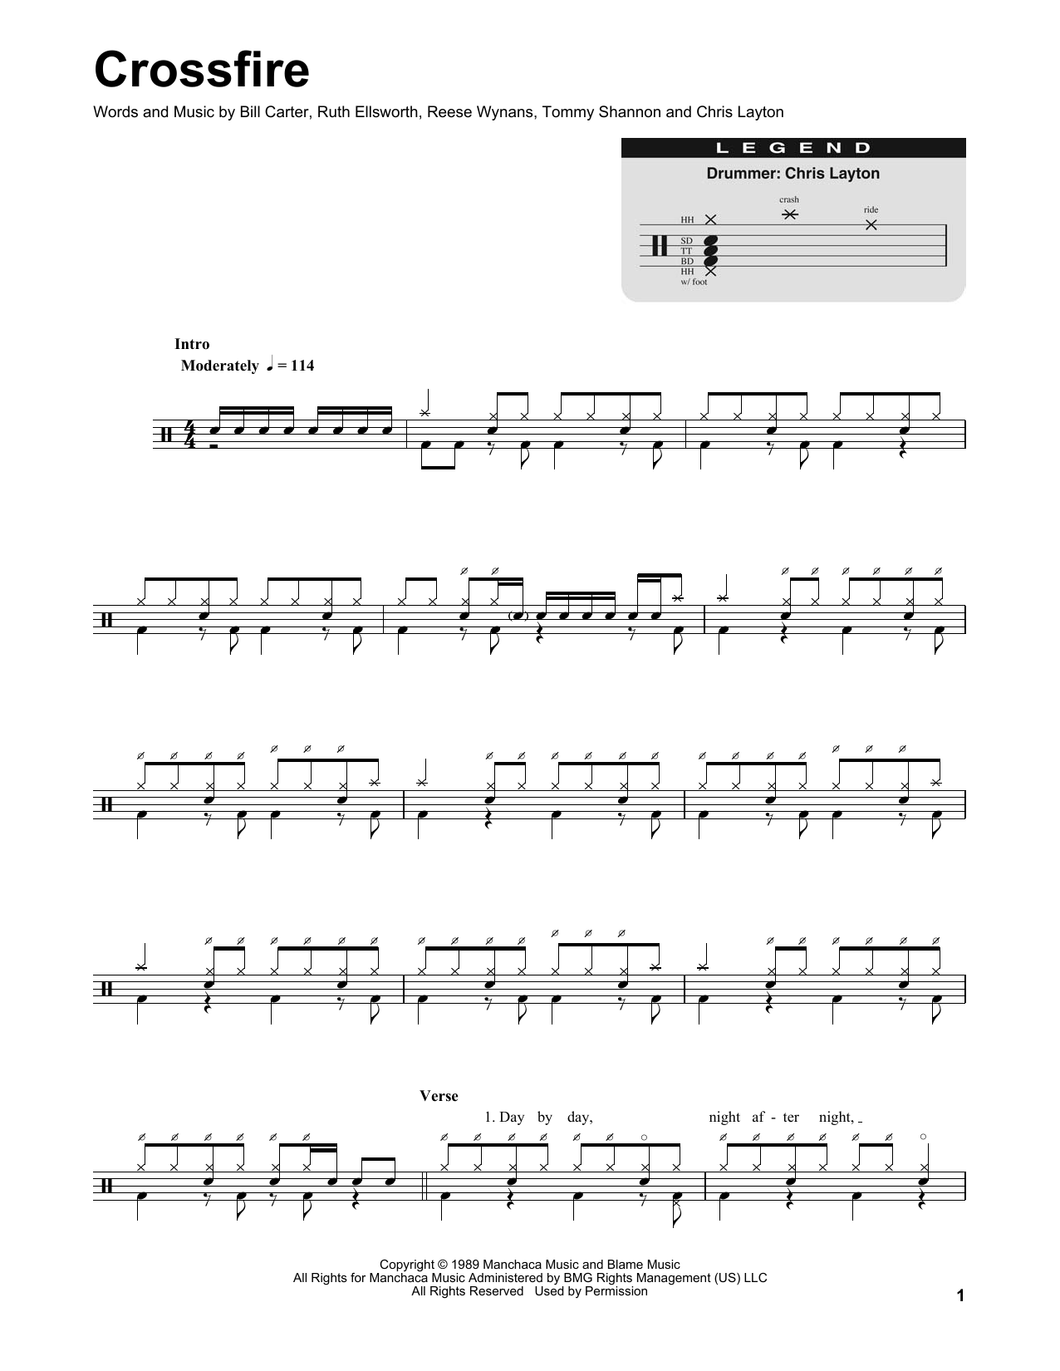 Crossfire - Stevie Ray Vaughan - Full Drum Transcription / Drum Sheet Music - SheetMusicDirect DT170264